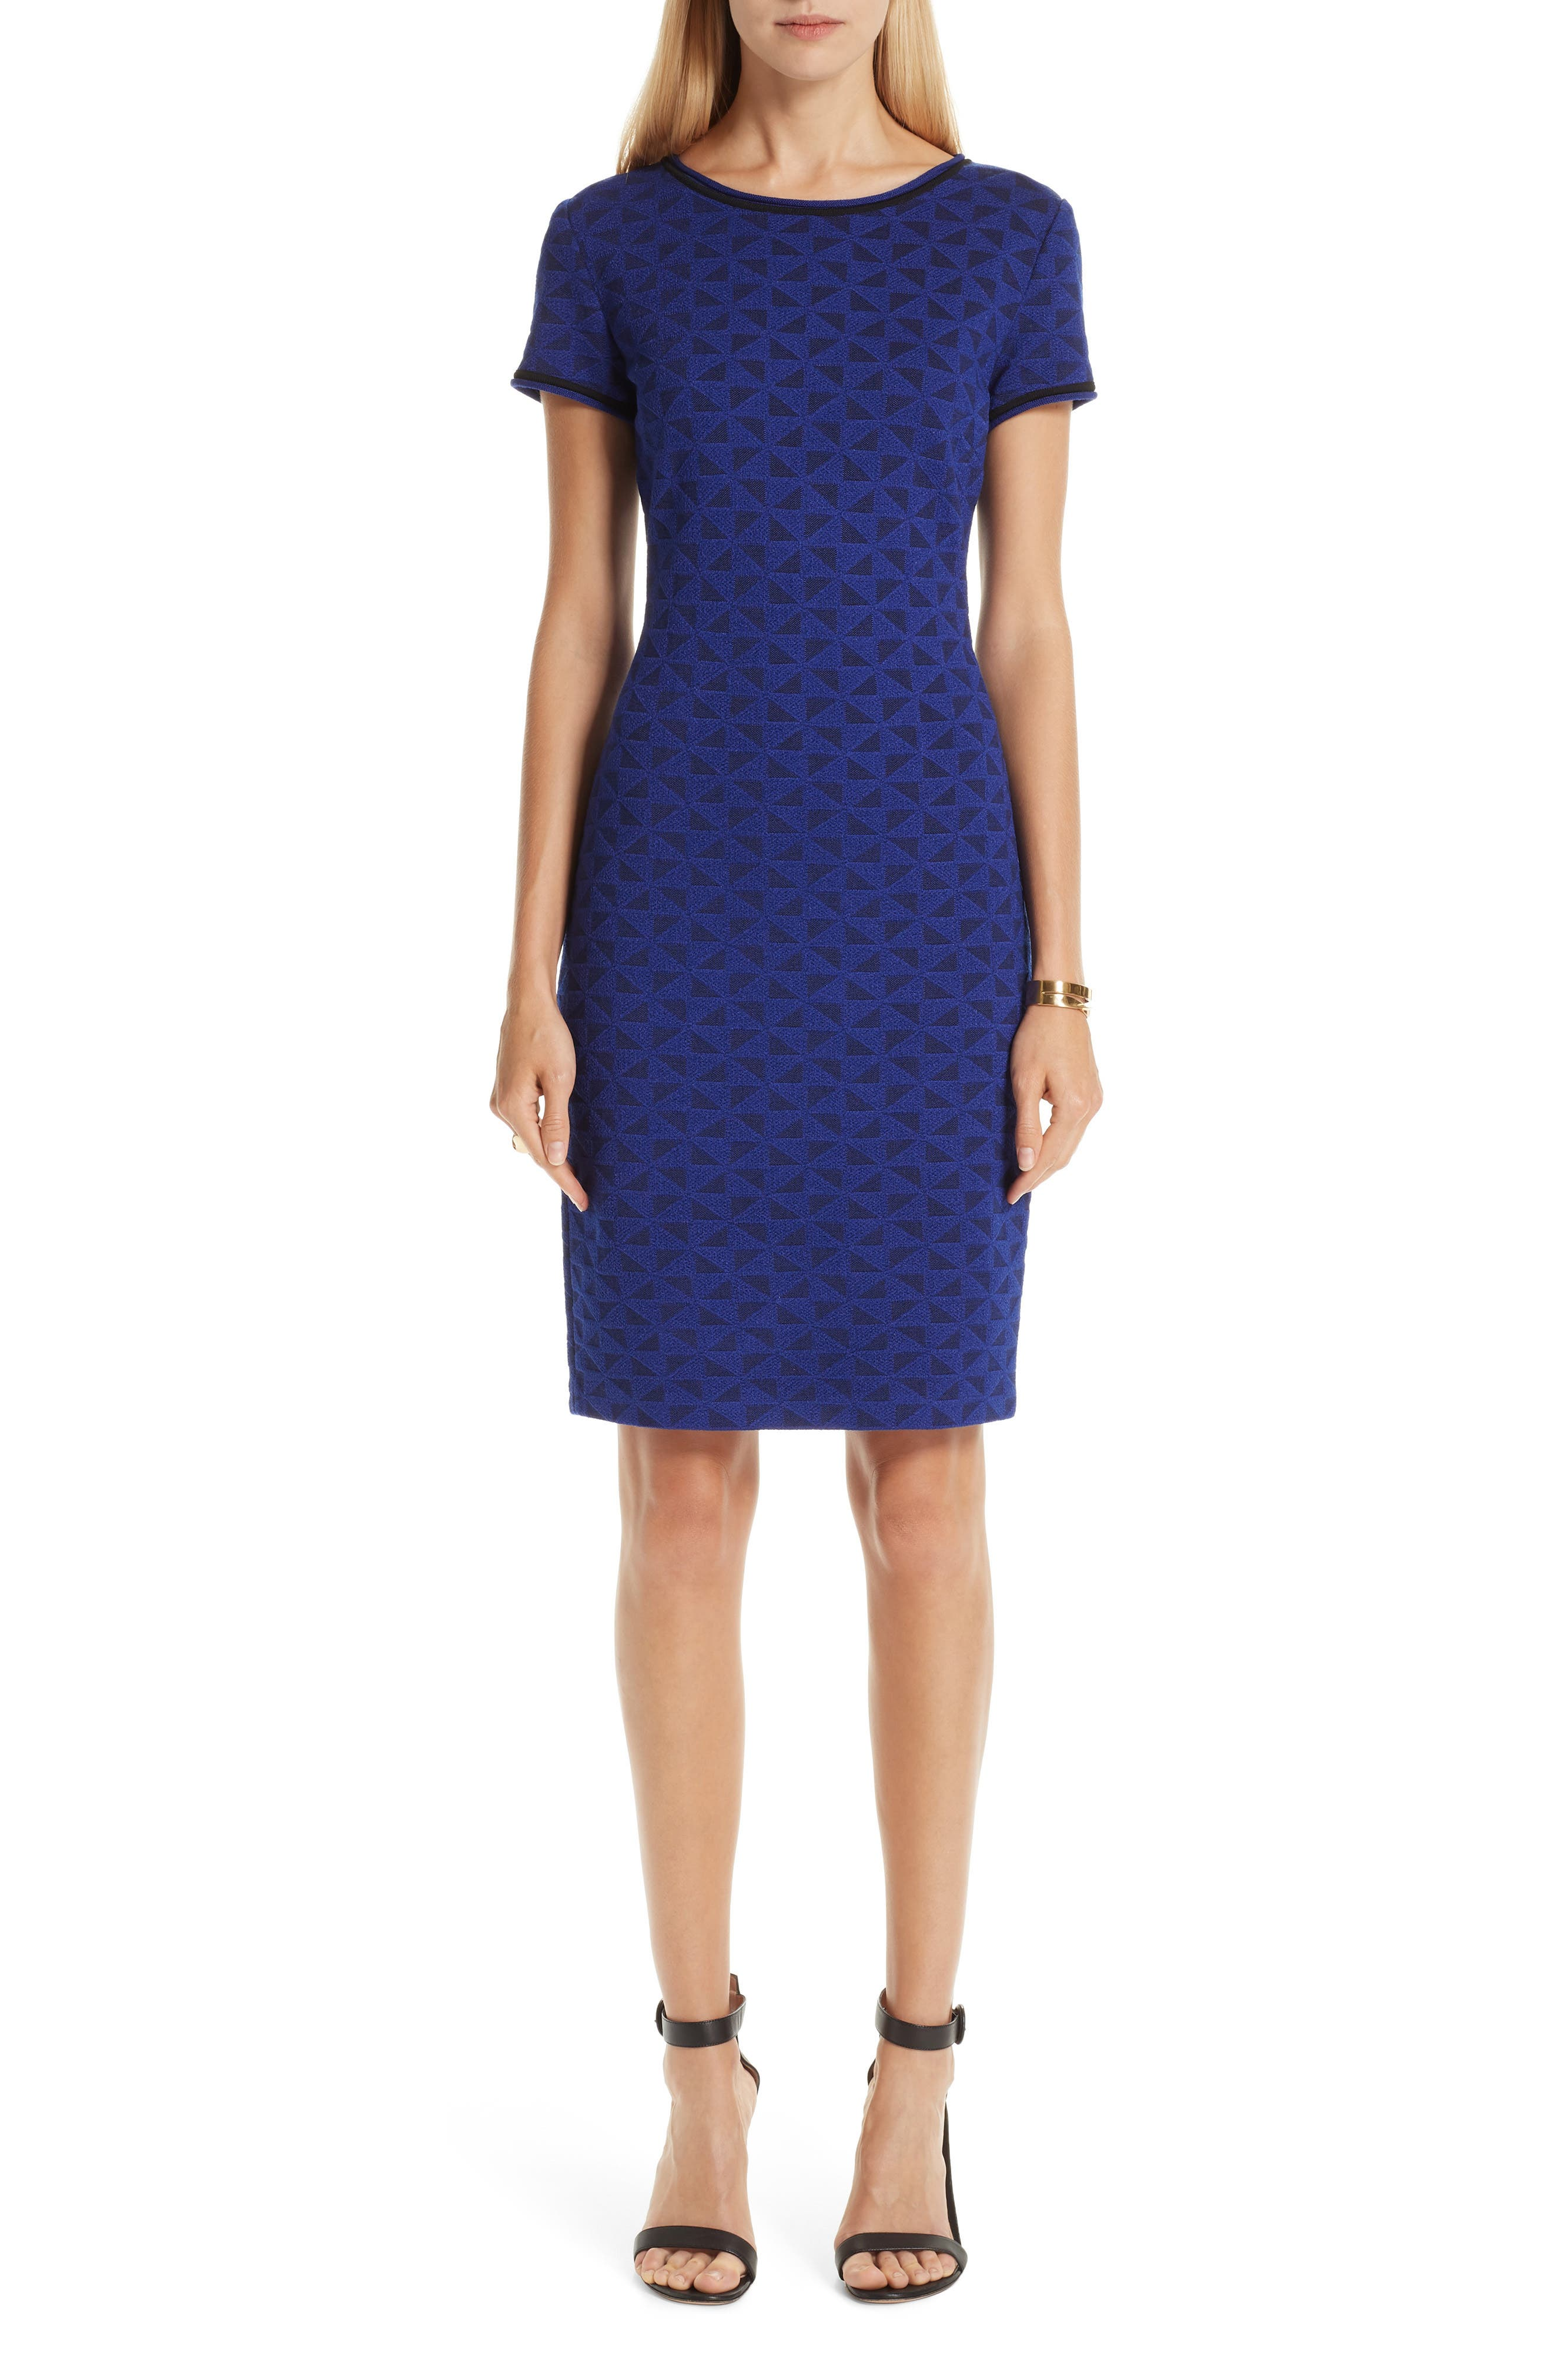 ST. JOHN COLLECTION Micro Geo Blister Knit Sheath Dress, Main, color, CAVIAR/ SAPPHIRE